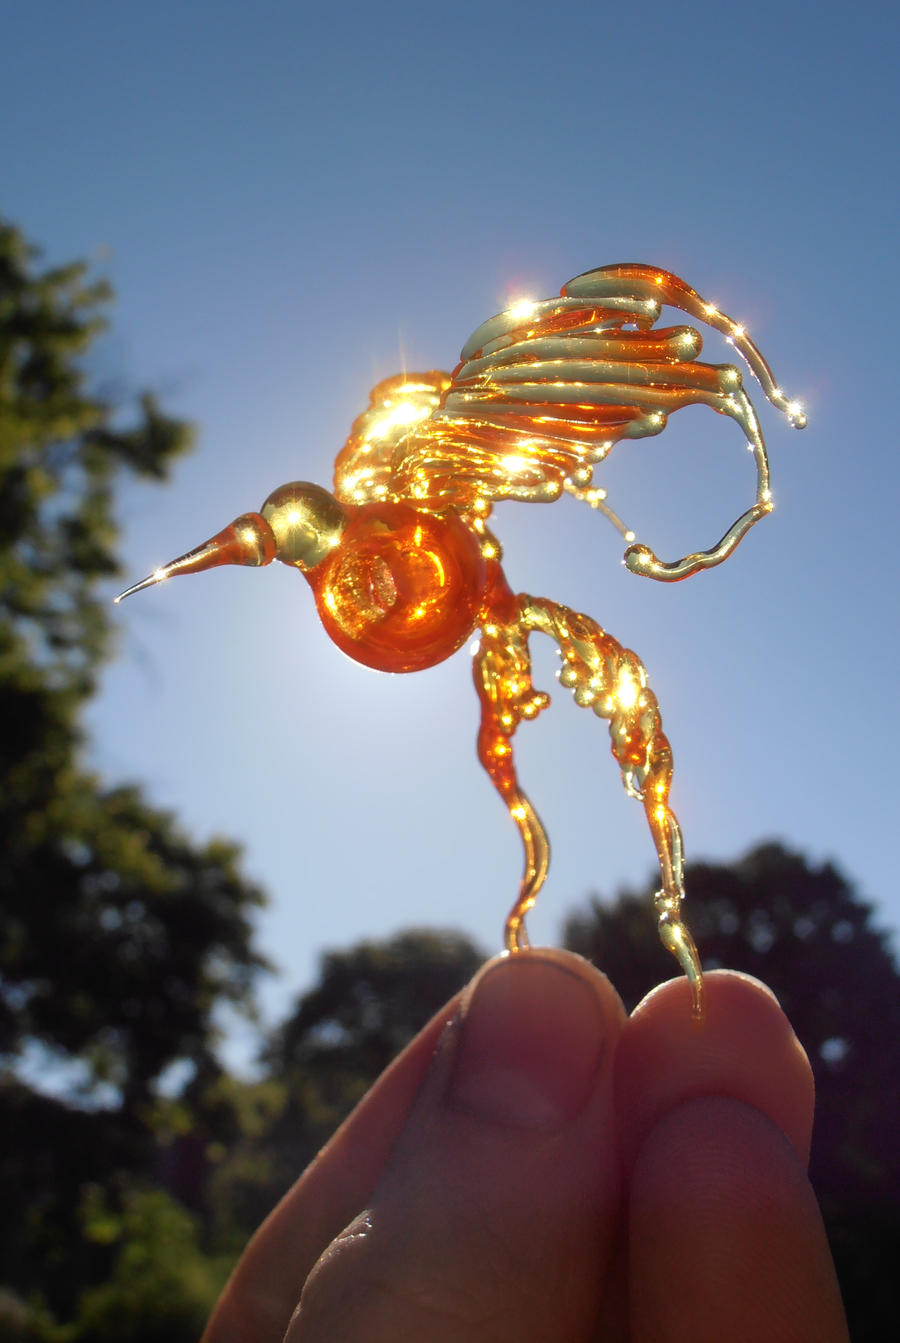 Fireborn - Lampwork bead glass phoenix bird by fairyfrog